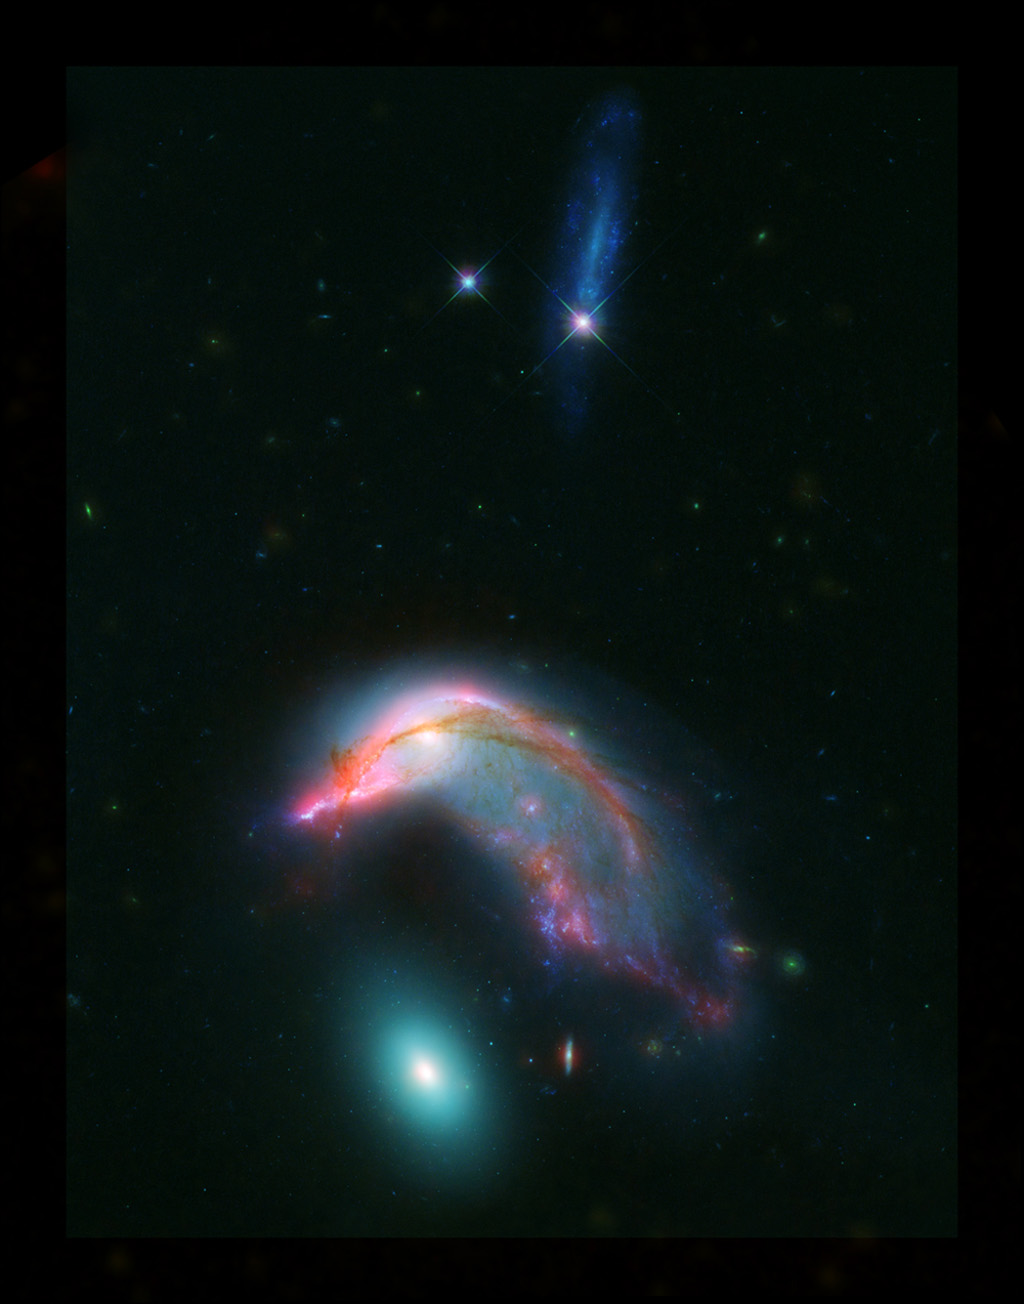 'Penguin guarding its egg': Hubble captures distant colliding galaxies in a breathtaking cosmic shot